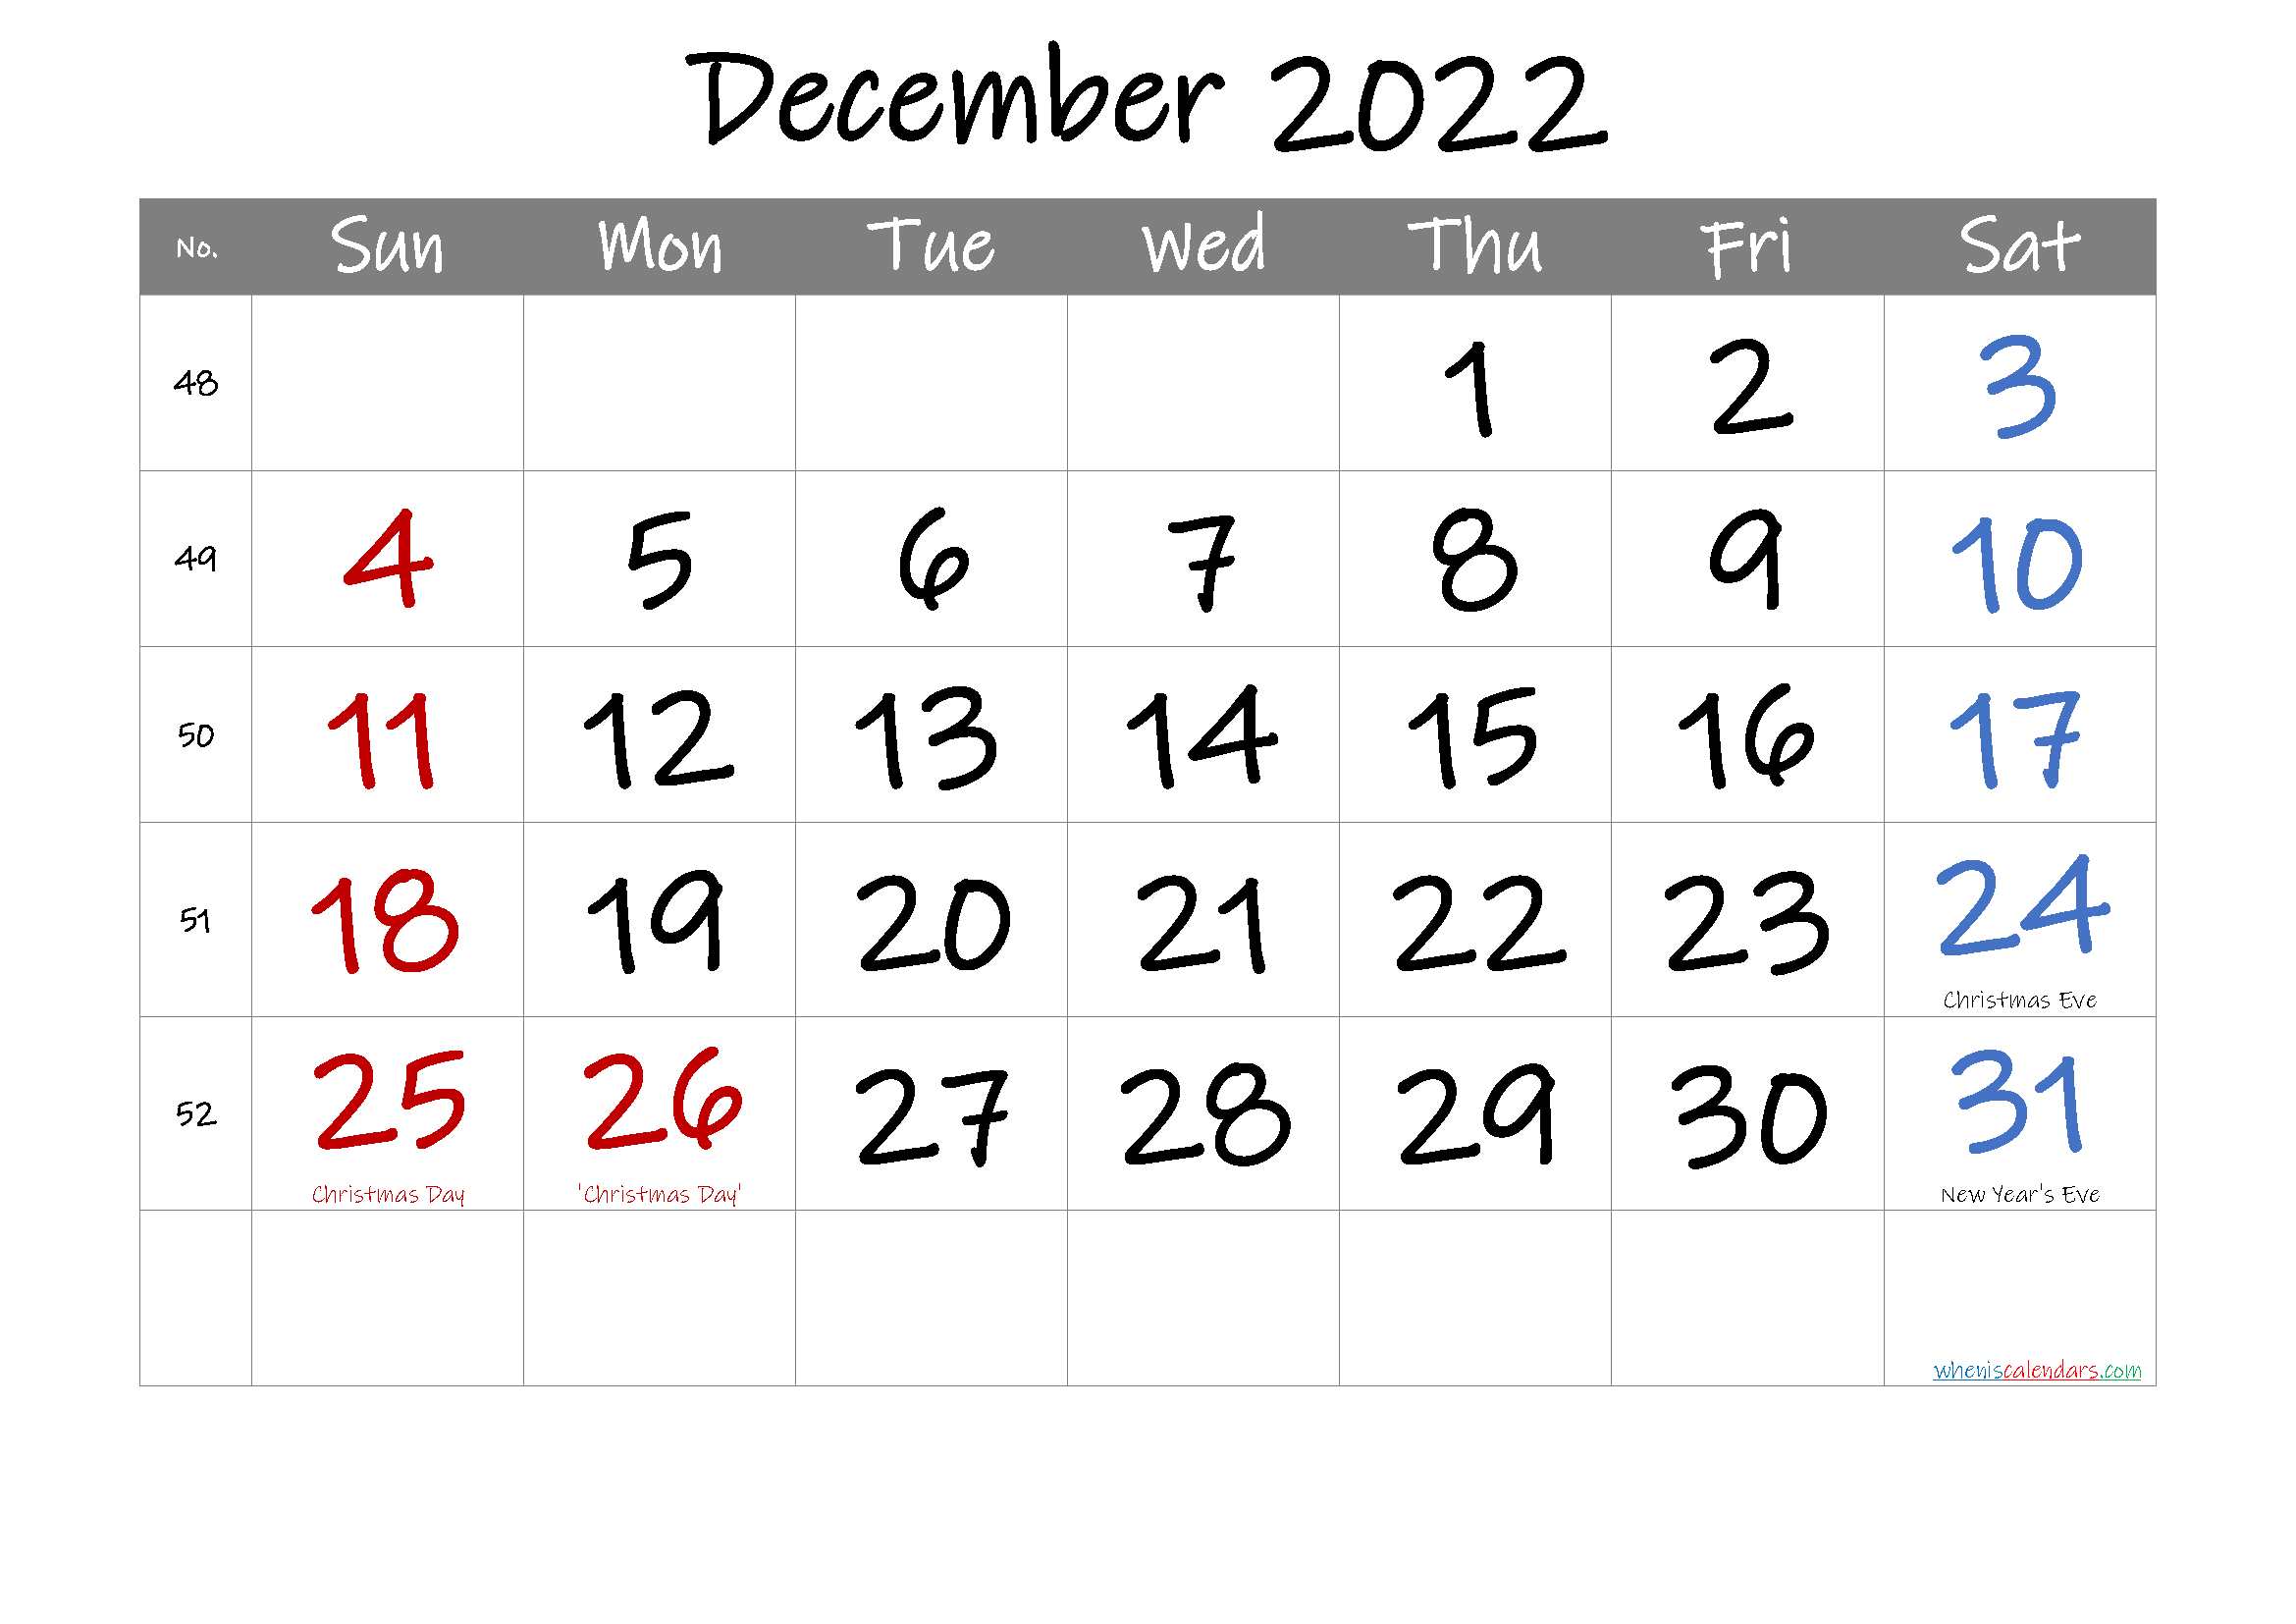 Free Printable December 2022 Calendar with Holidays